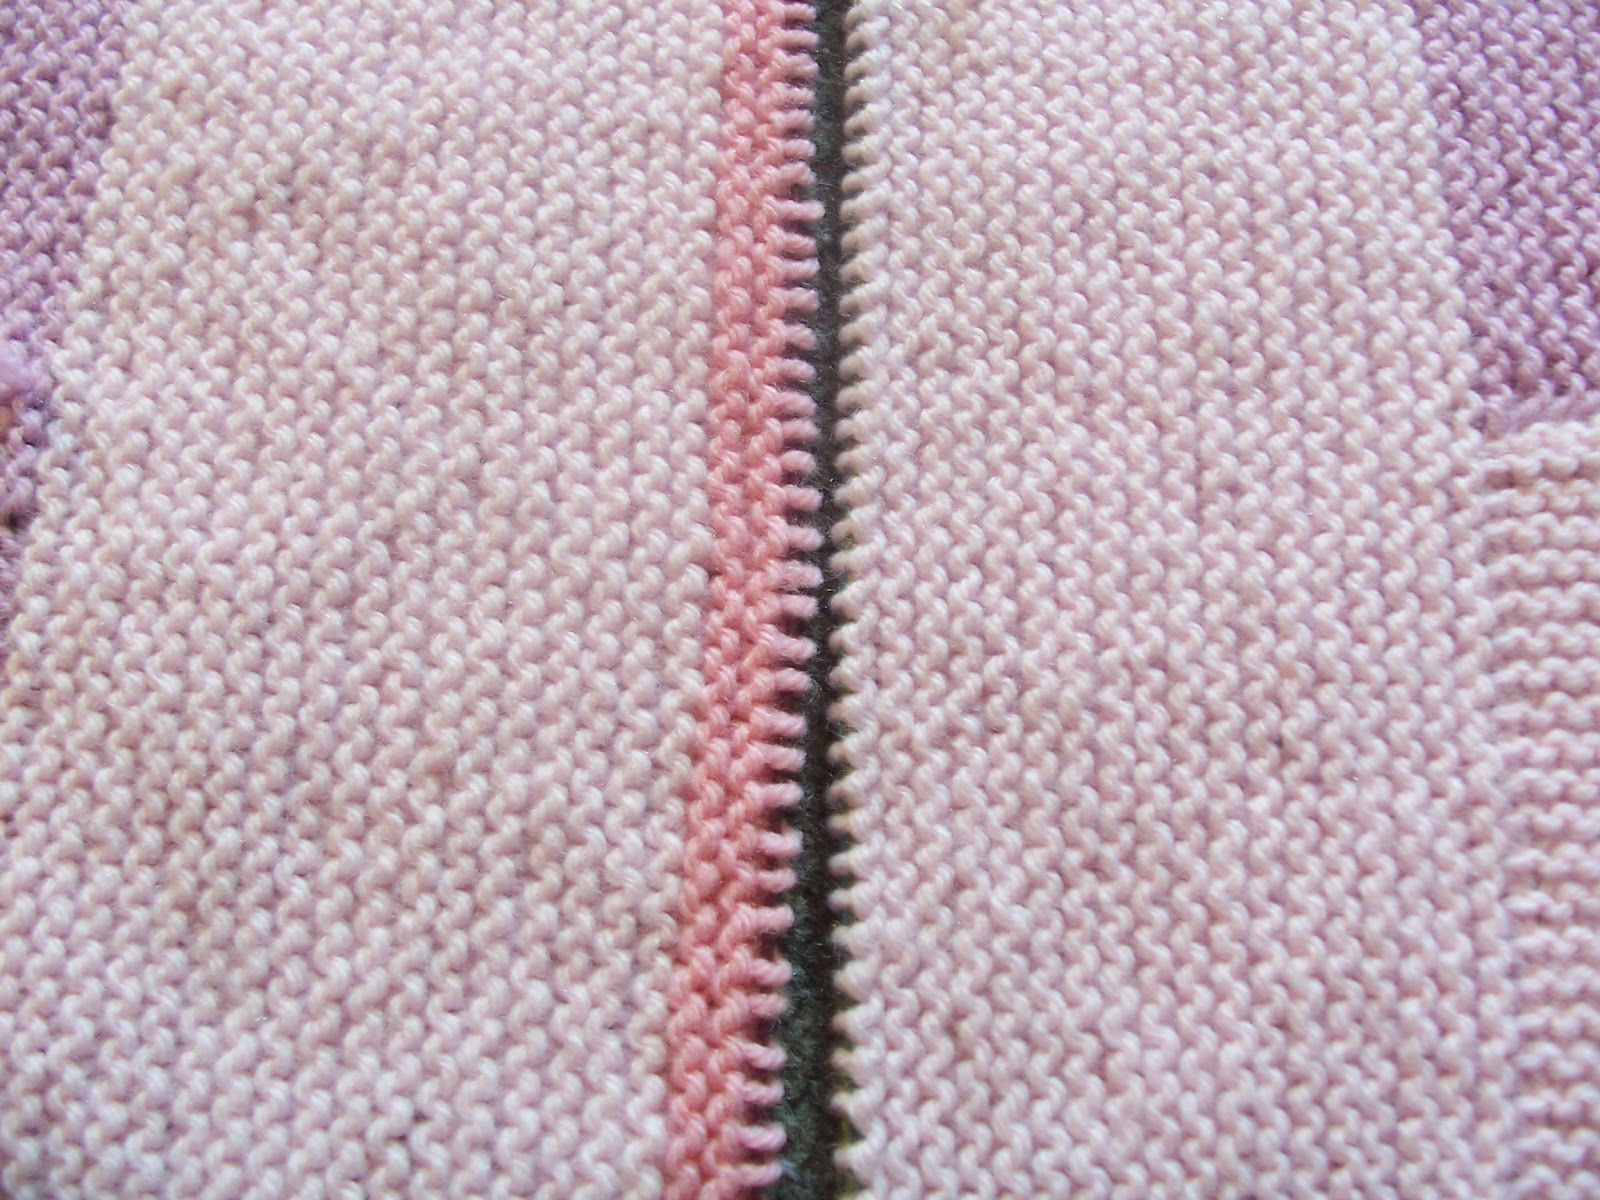 Knitting Stitches Grafting : Life gets in the way of my Knitting!: Grafting Garter Stitch